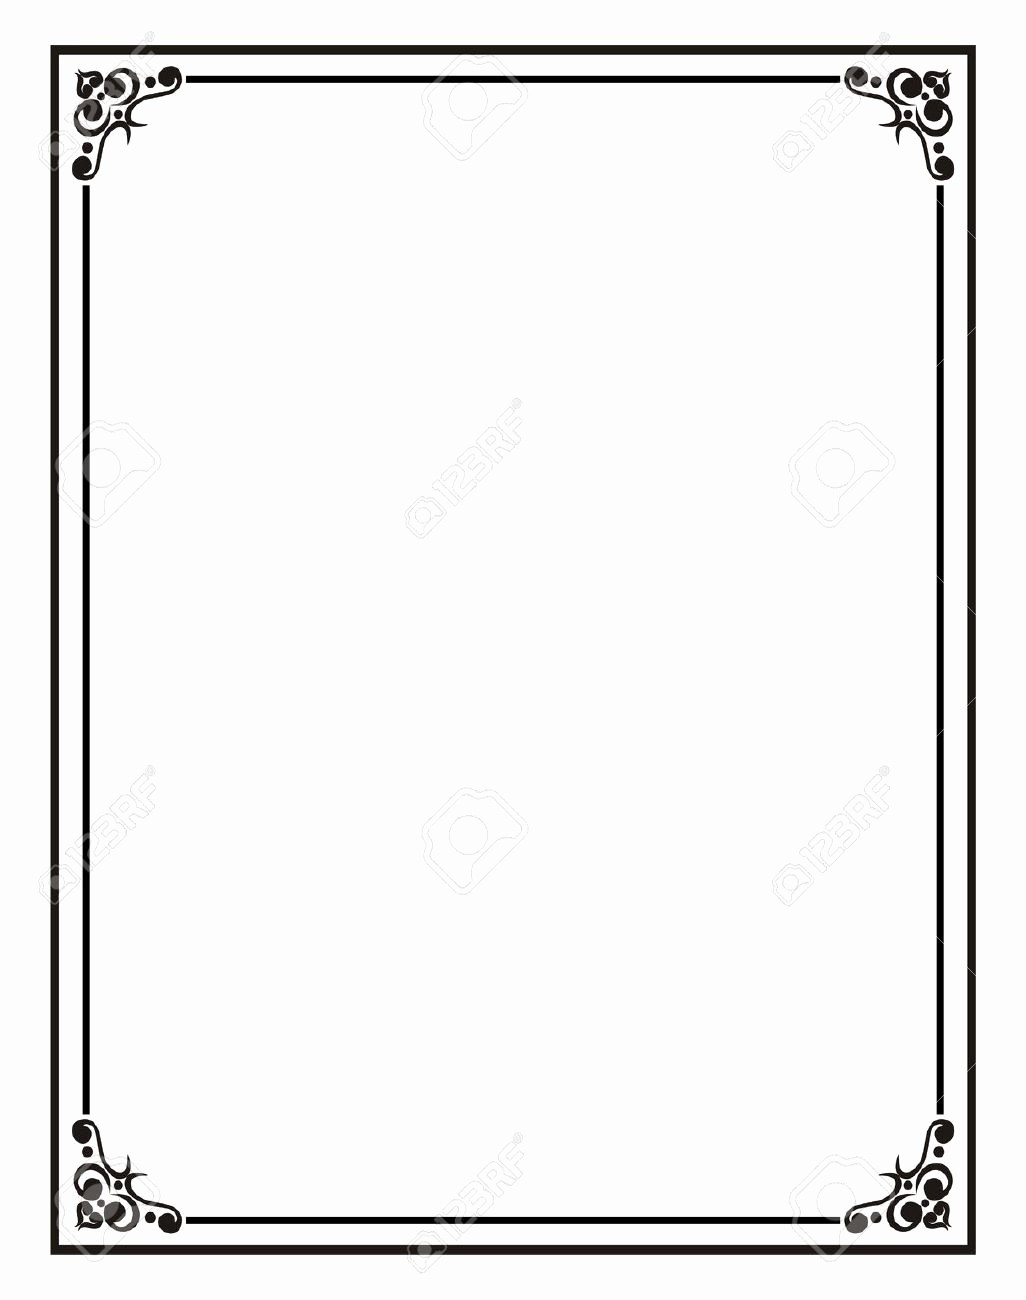 Certificate Border Template for Word Lovely Home Fice Certificate Border Stock S